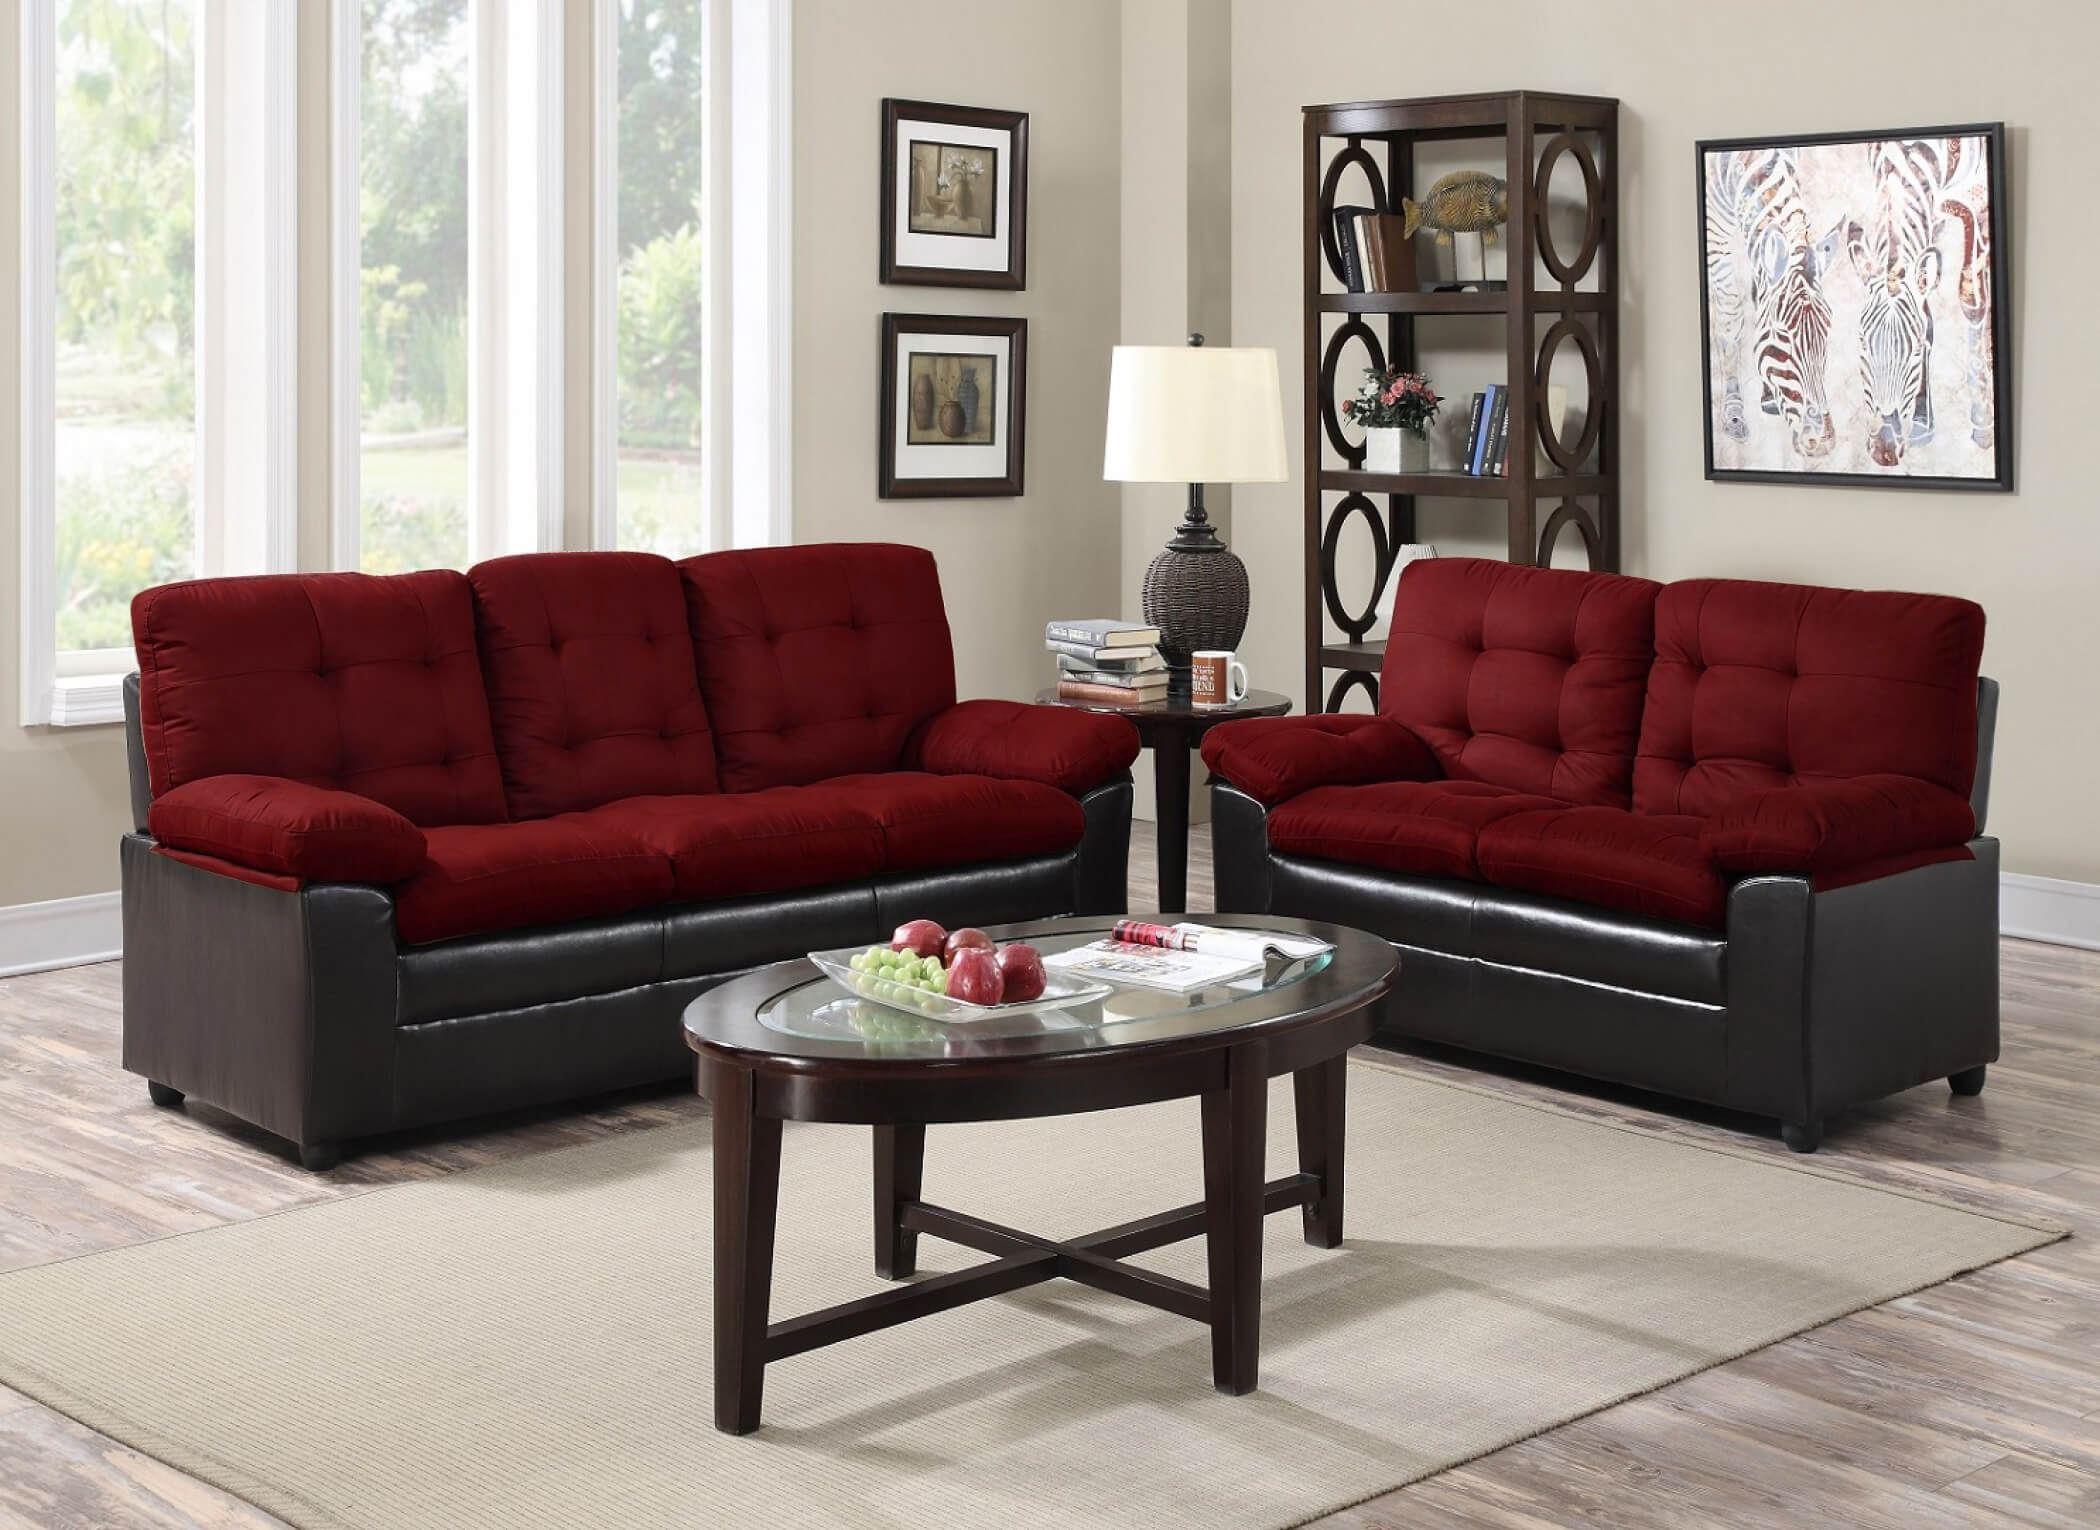 6700 Burgundy Two Tone Living Room Set